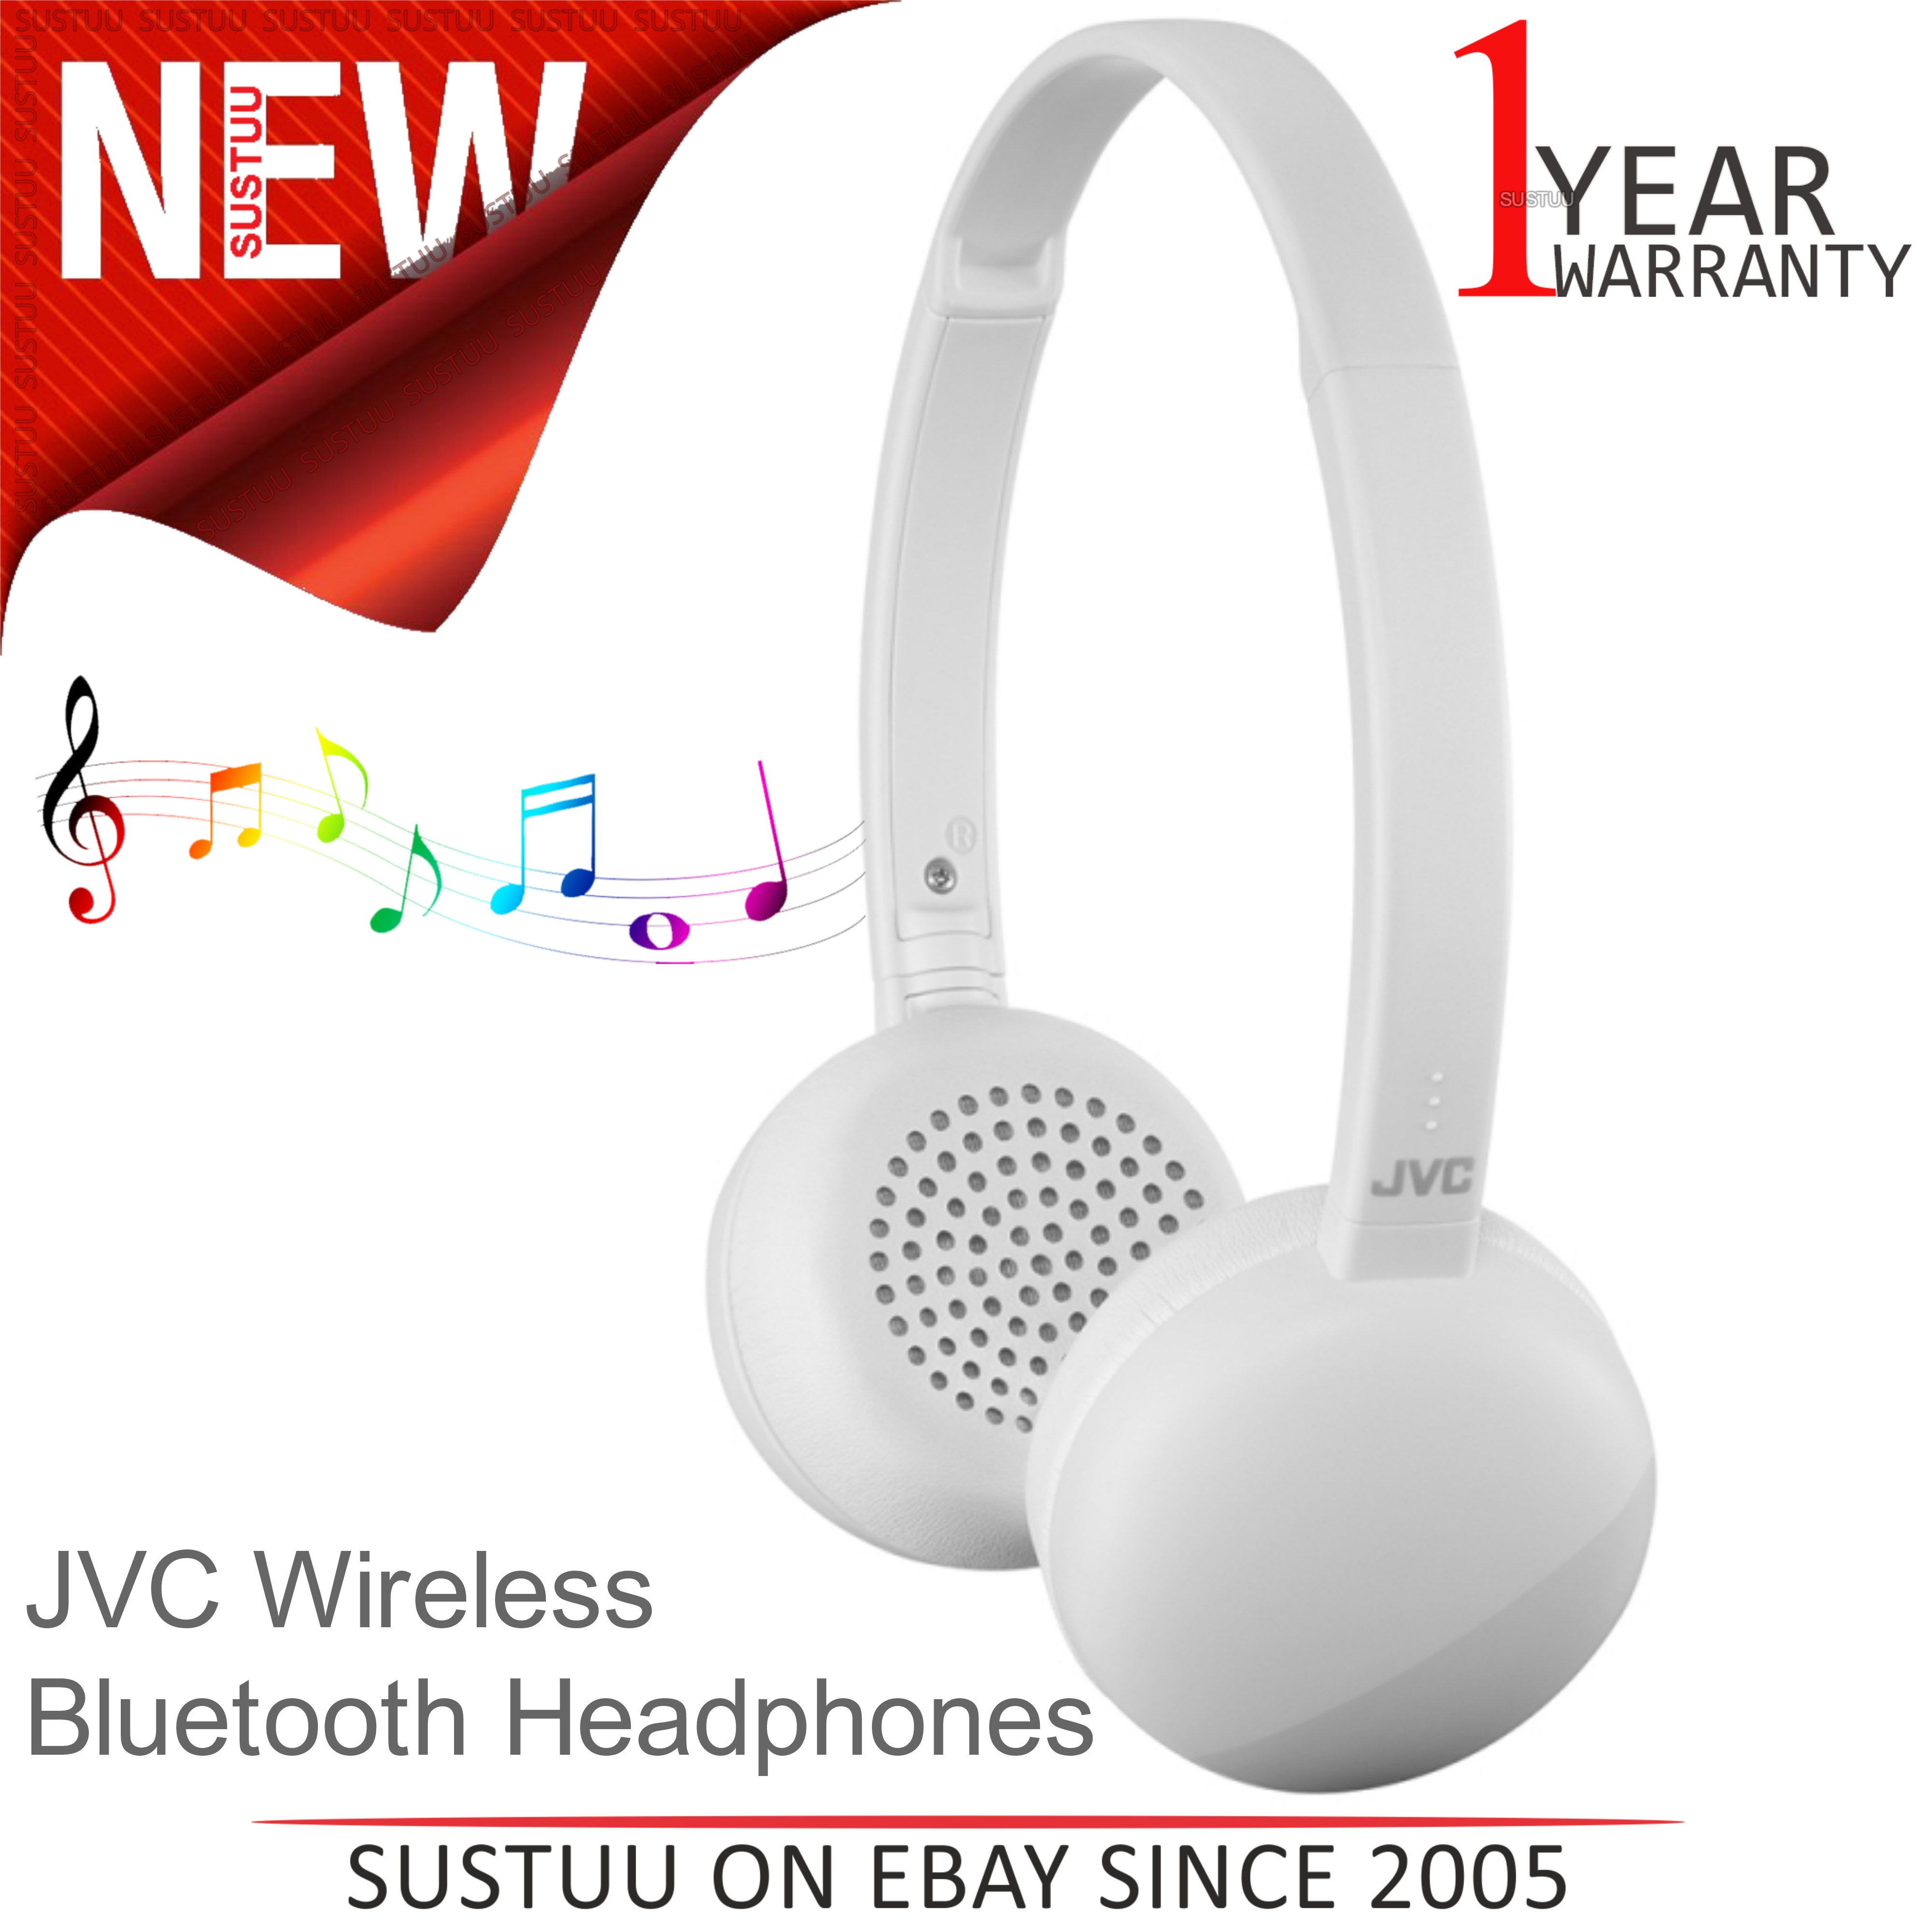 cc93b817624 Details about JVC HAS20BTHE Flats Wireless Bluetooth Headphones│3 Button  Remote & Mic│White│